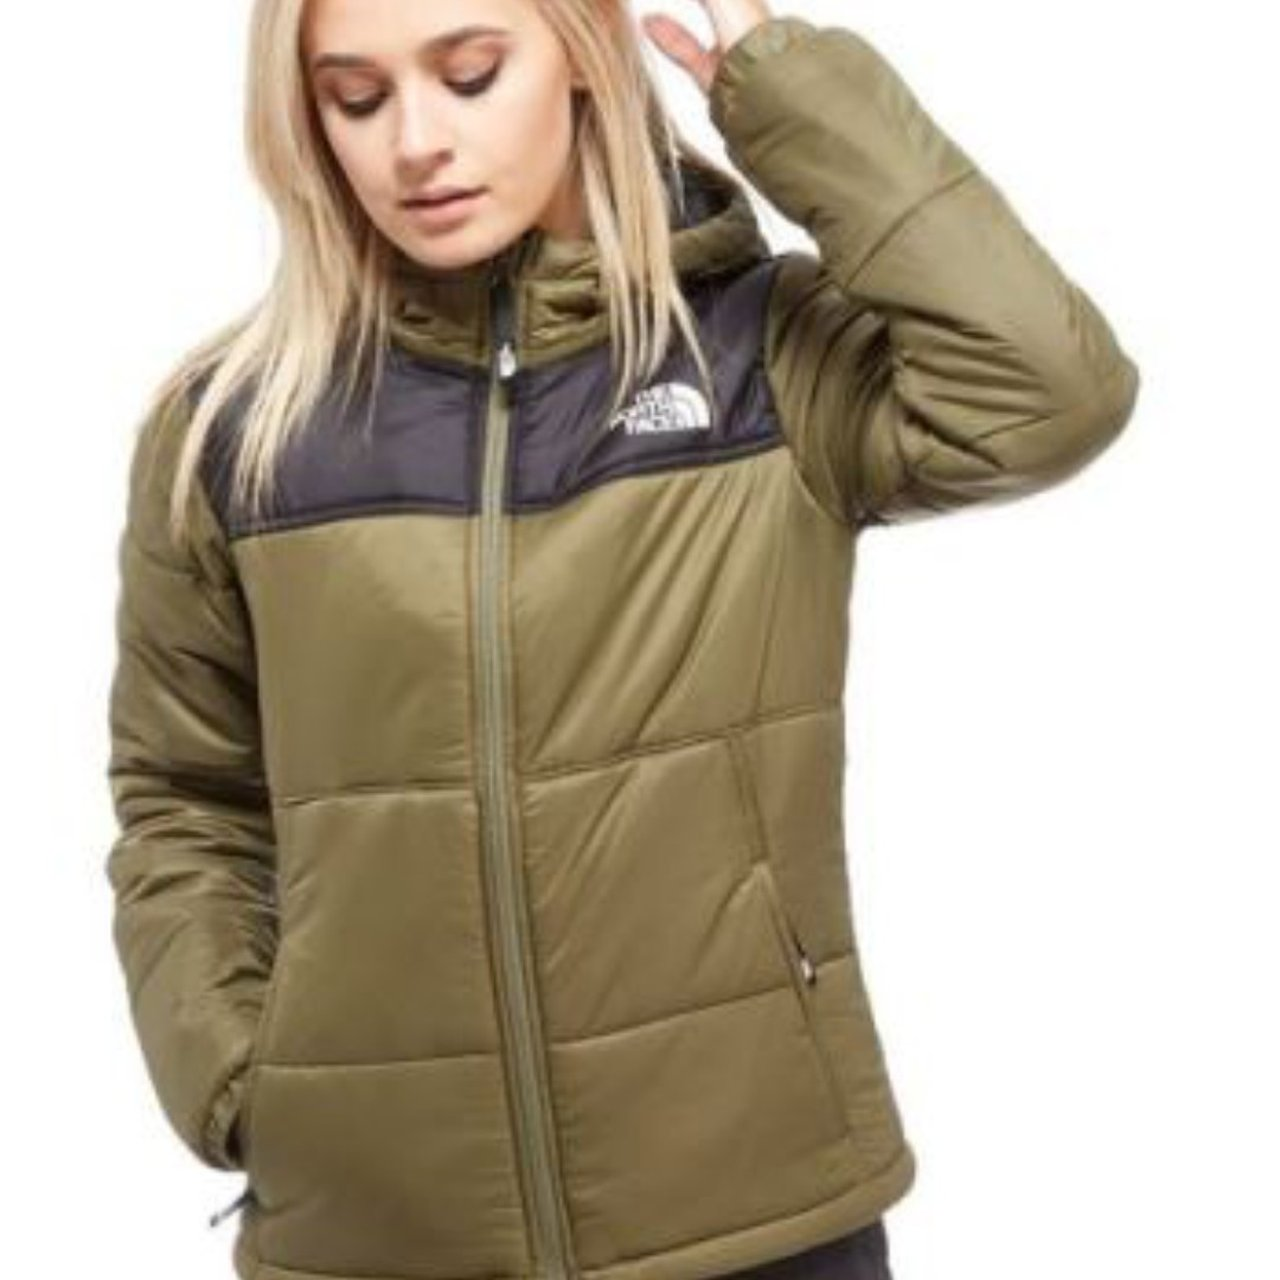 The North Face Padded Jacket - Khaki - Womens The North Face - Depop 9235e73cb